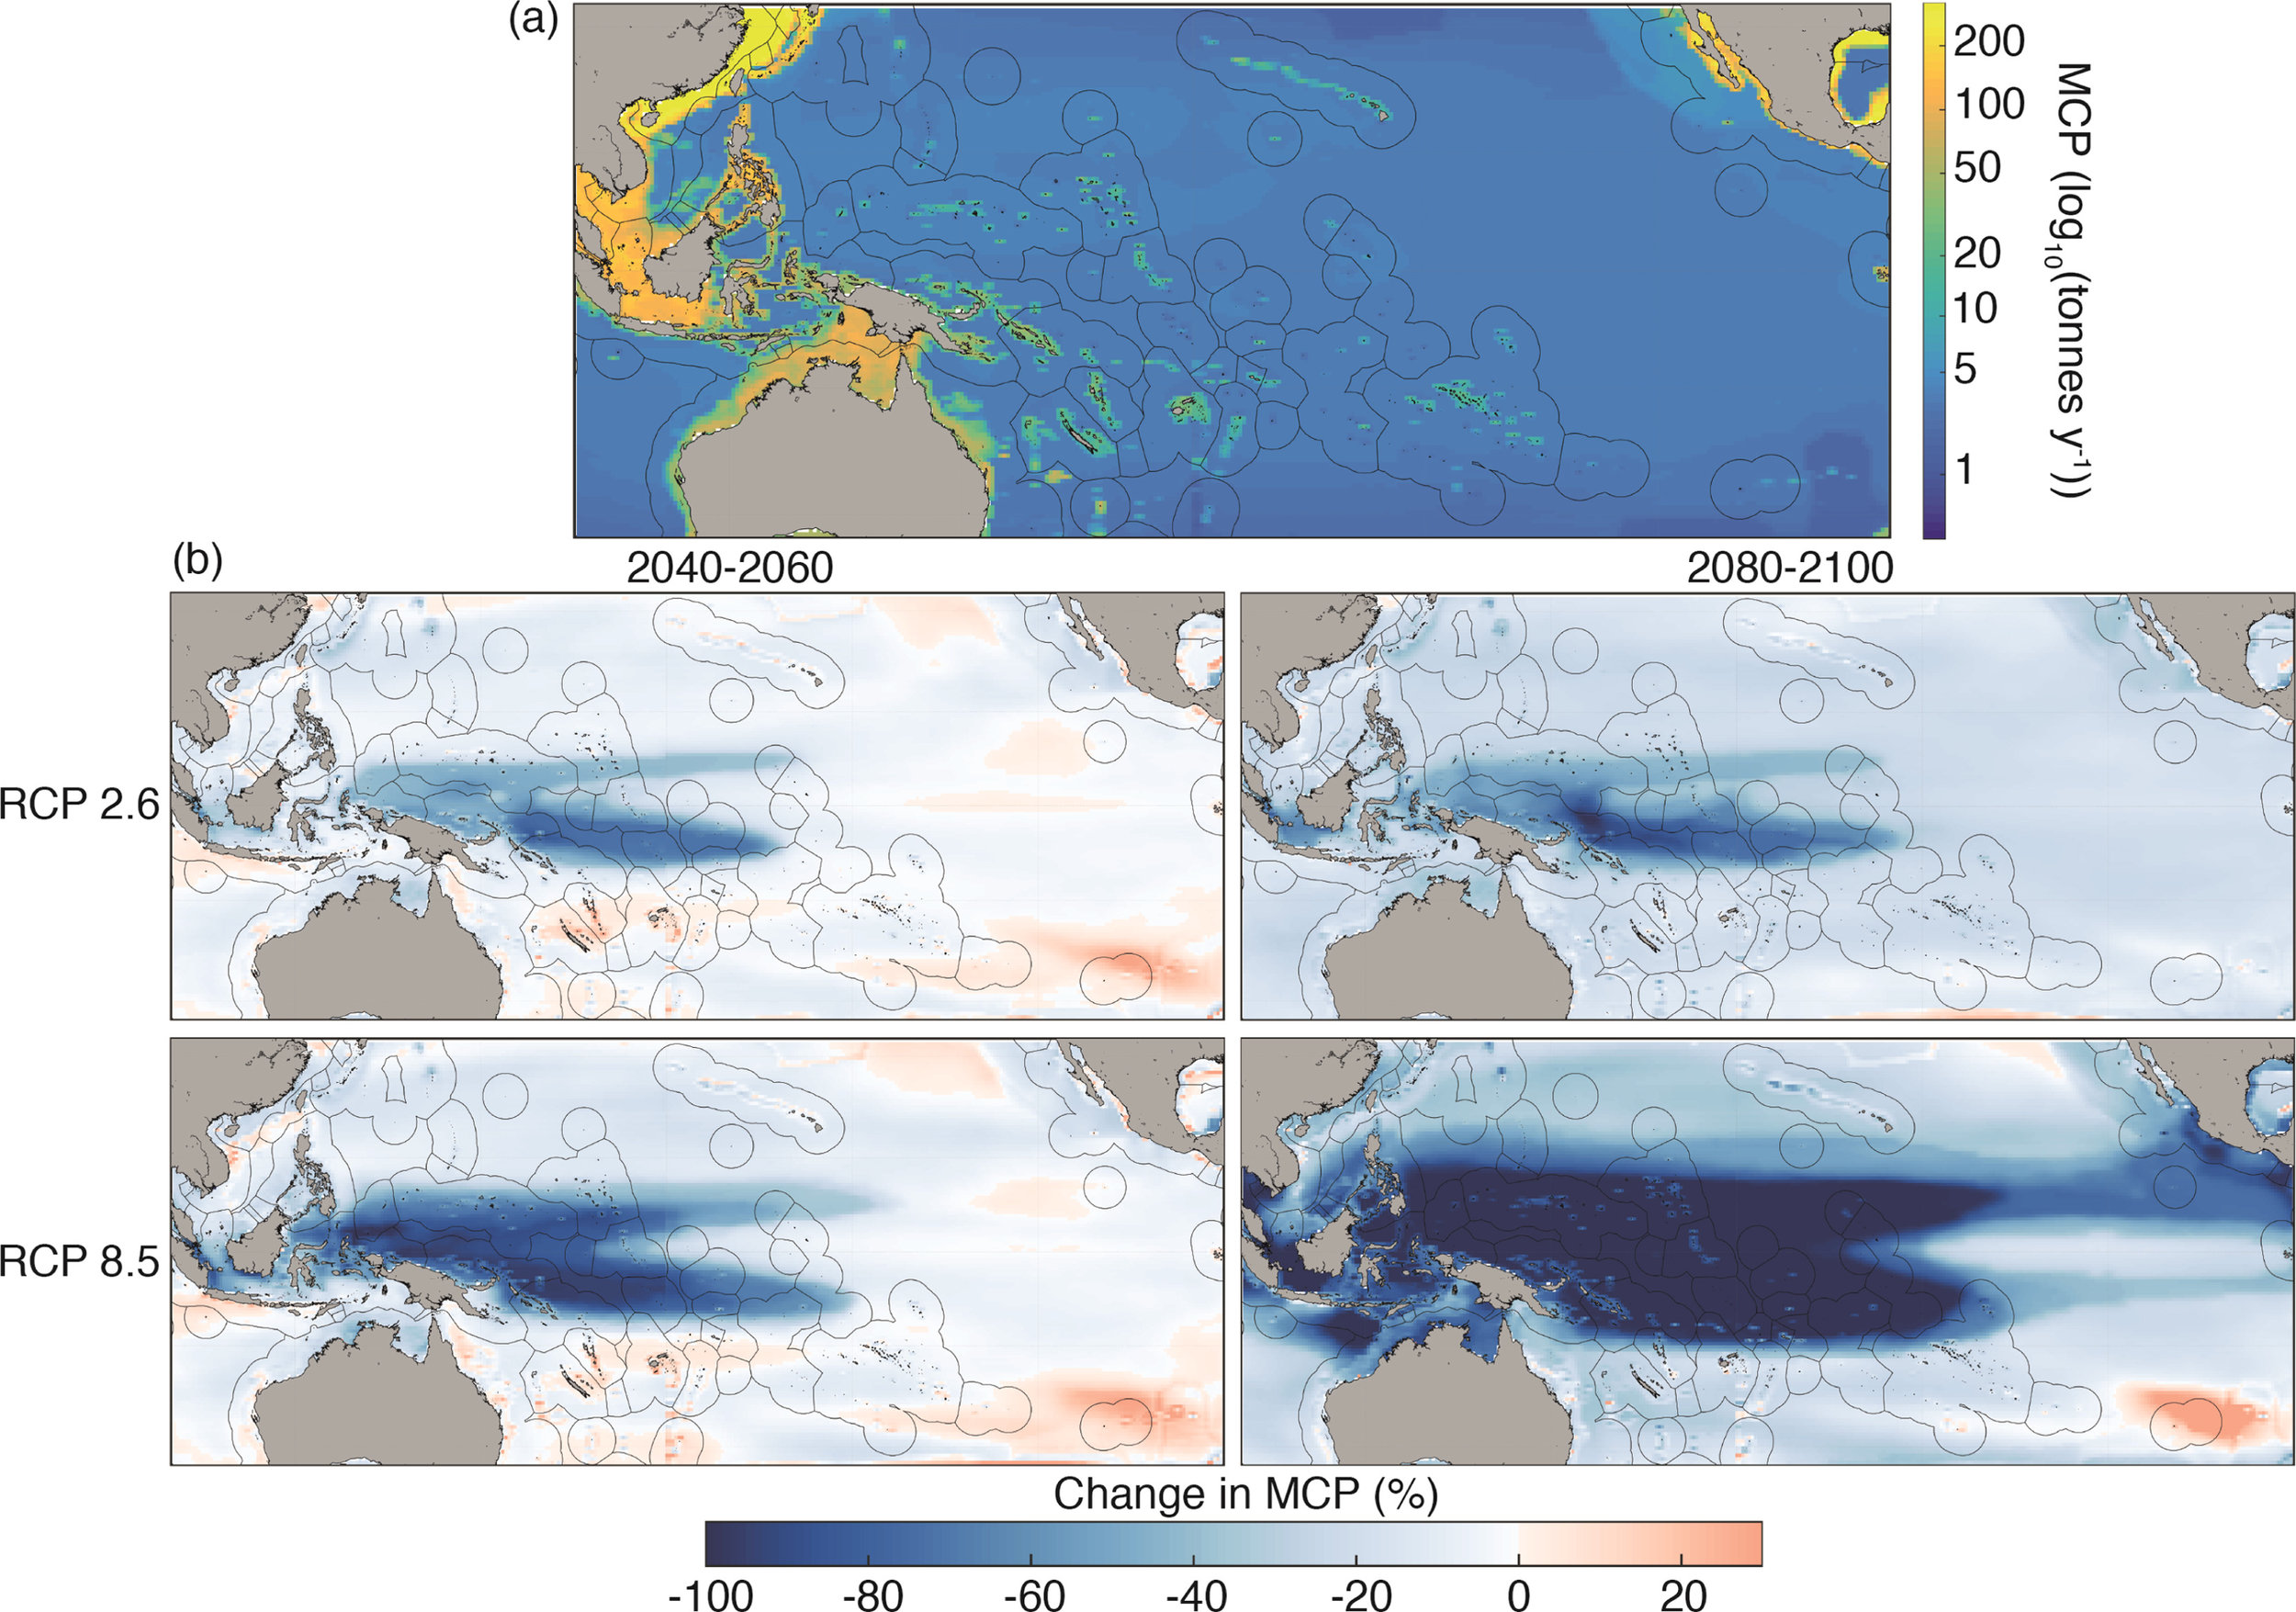 Maps of projected Maximum Catch Potential (MCP) during different periods. (a) Mean MCP for the 1980–2000 reference period. (b) Change in MCP during 2040–2060 and 2080–2100 under Representative Concentration Pathways (RCPs) 2.6 and 8.5 in comparison to the reference period.